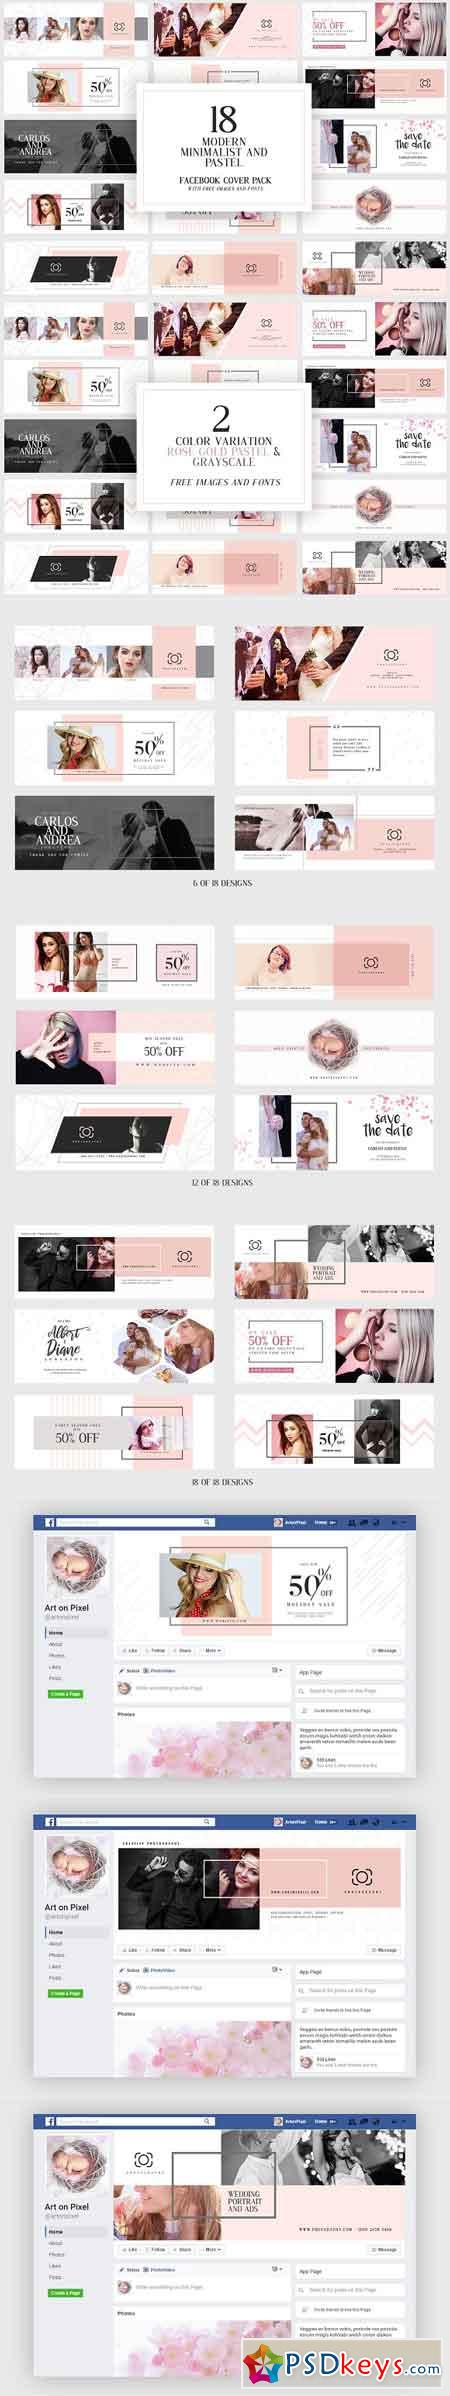 Modern Pastel Facebook Cover Pack 3022591